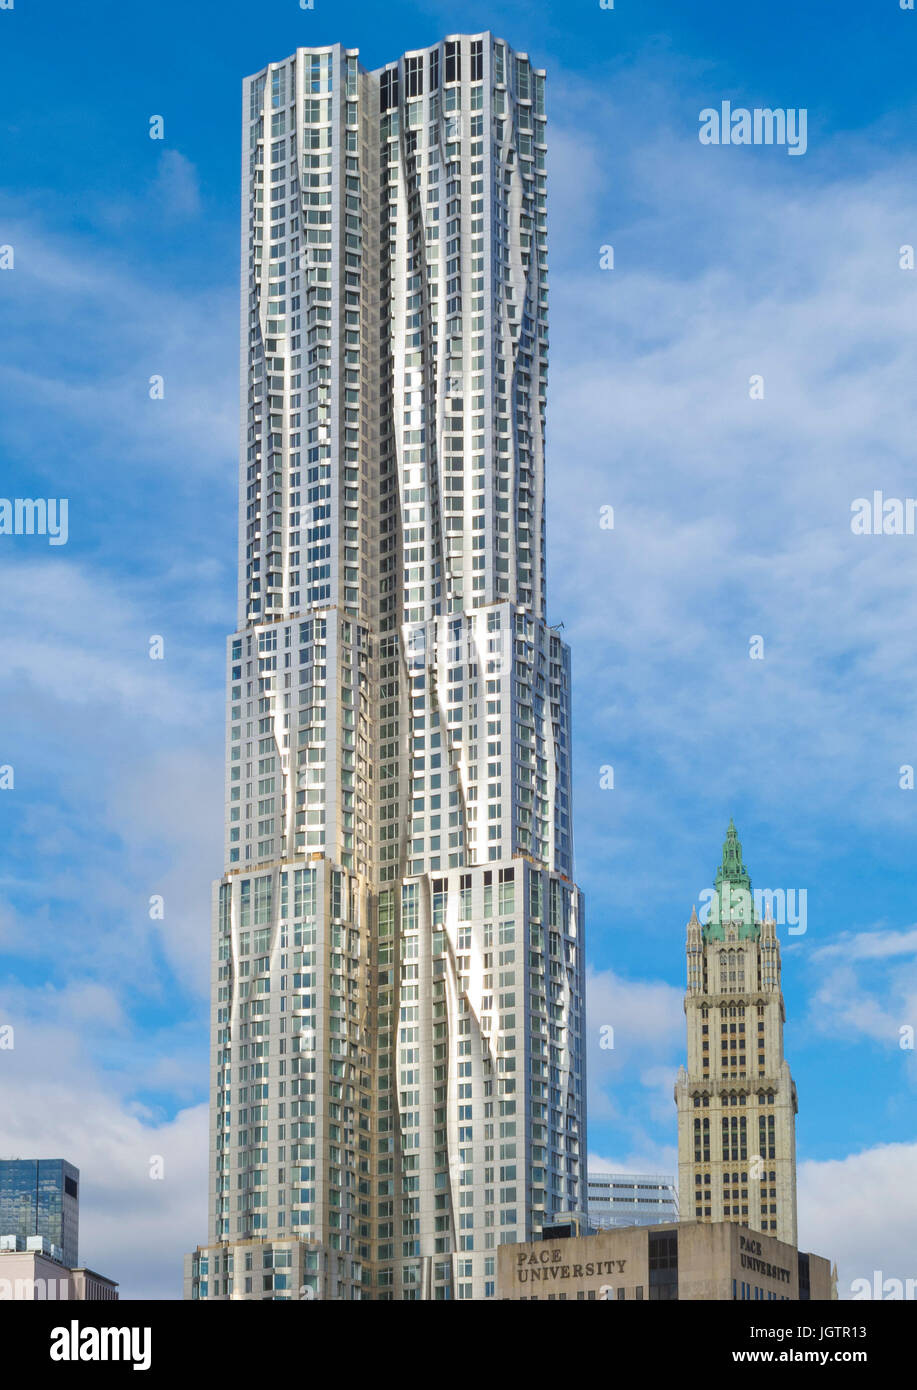 New Beekman Tower designed by Frank Gehry on Manhattan Island New York city USA - Stock Image